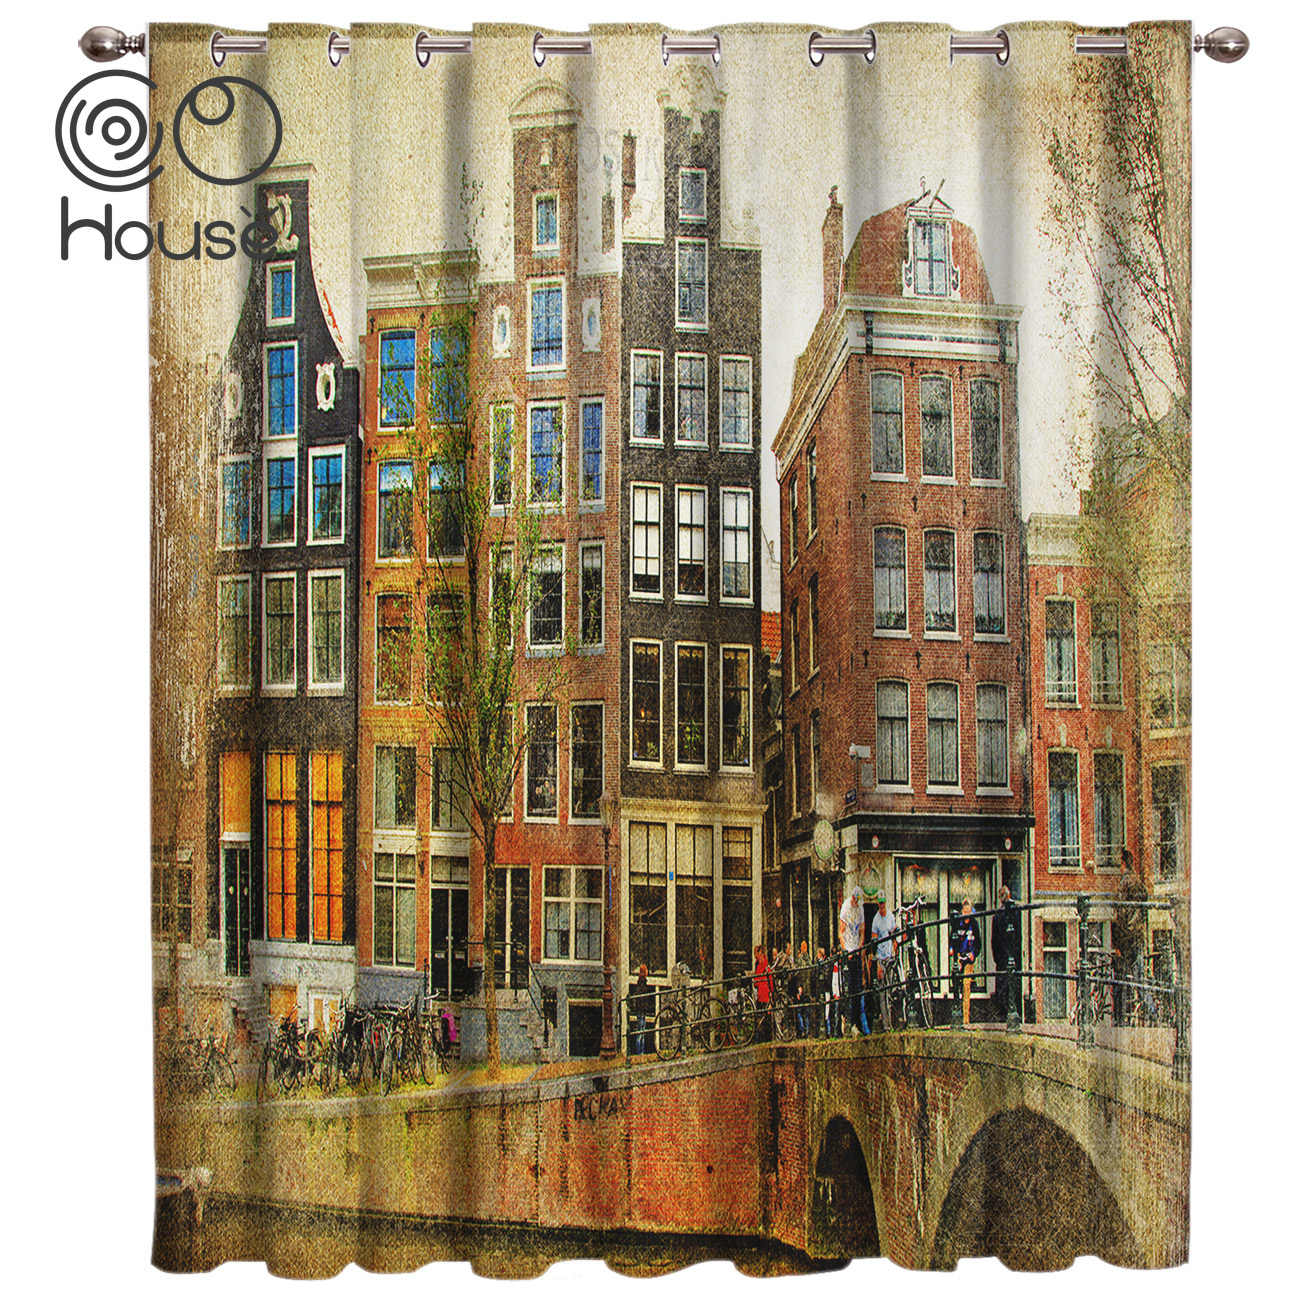 COCOHouse Amsterdam Netherlands European Vintage Living Room Curtains Blackout Bedroom Drapes Floral Curtain Panels With Grommet